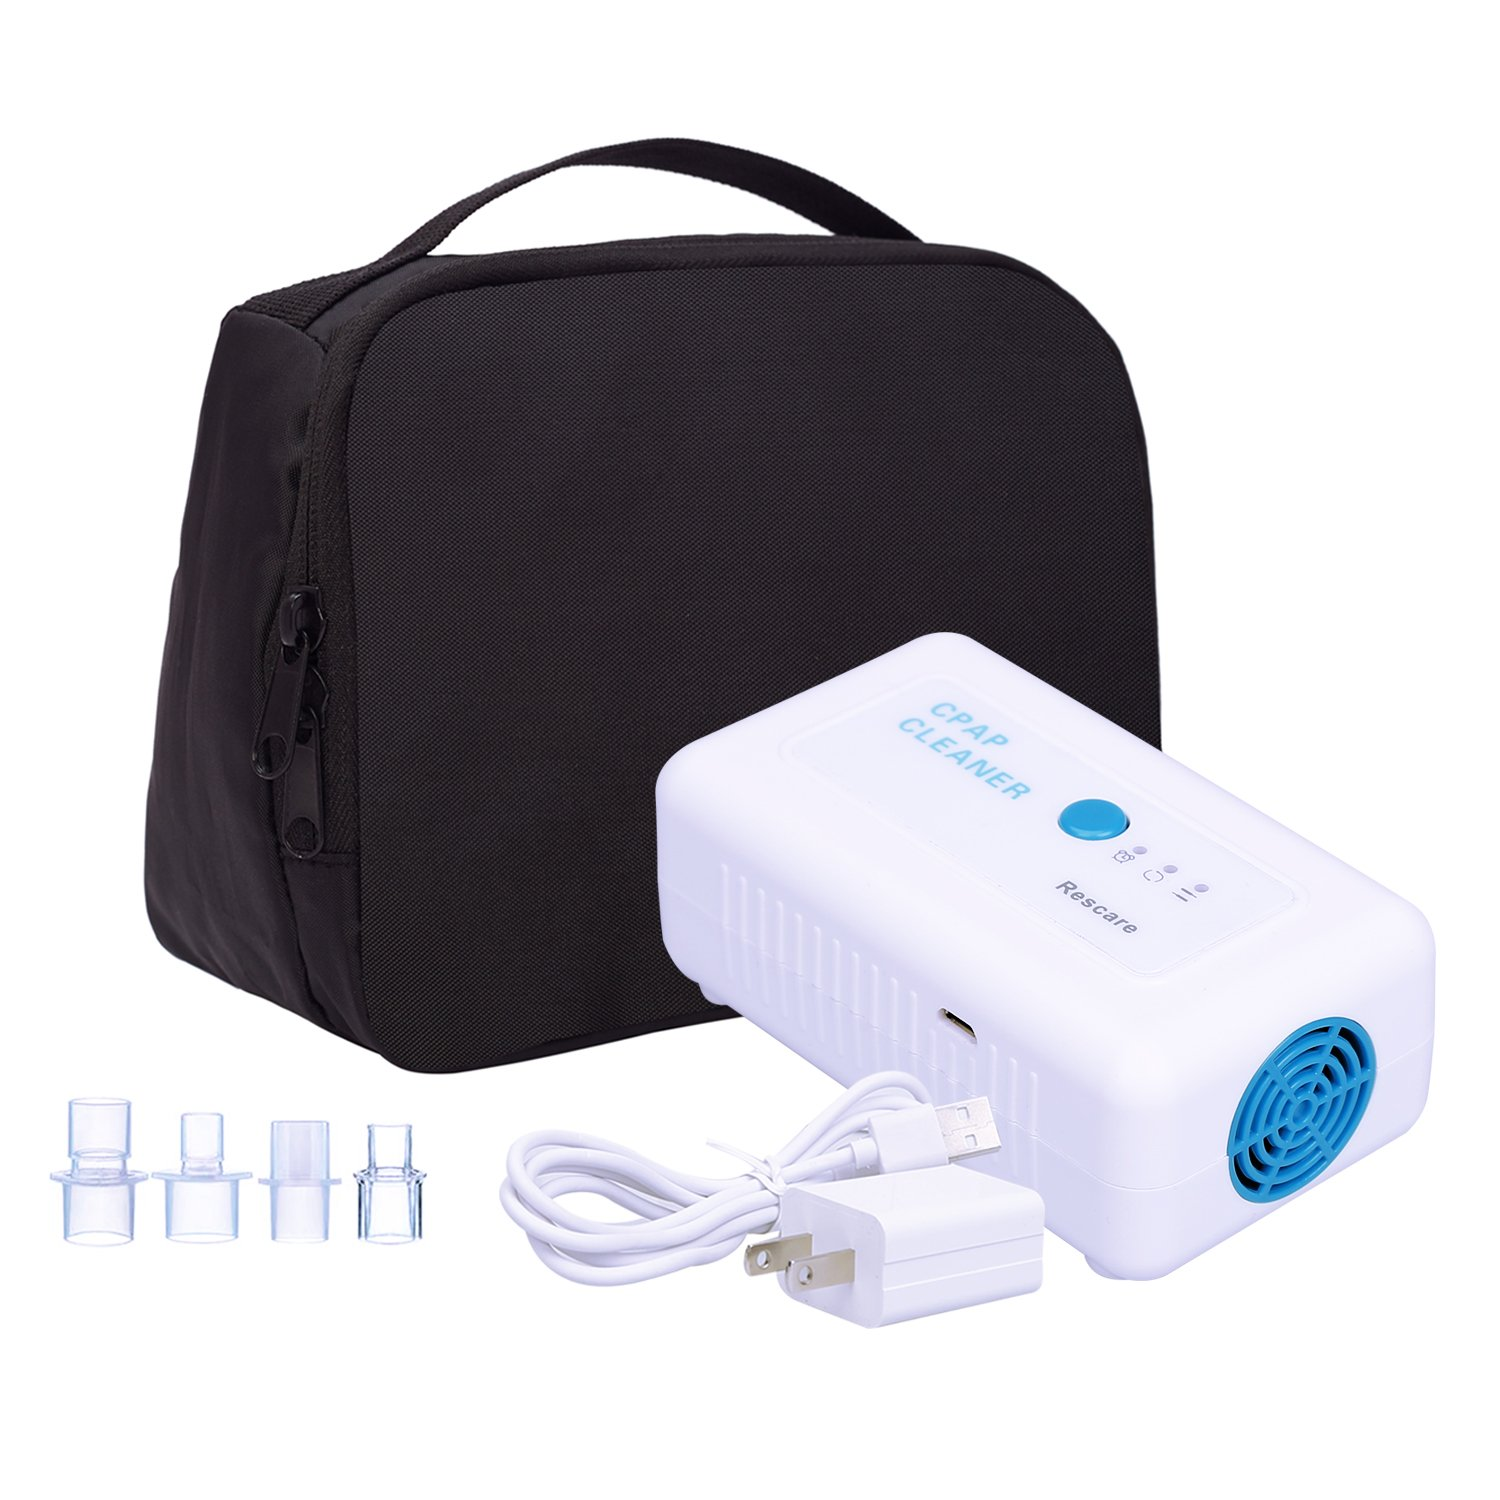 CPAP Cleaning & Sanitizing Machine – Rescare M1 CPAP Cleaner CPAP Cleaning Ober Health